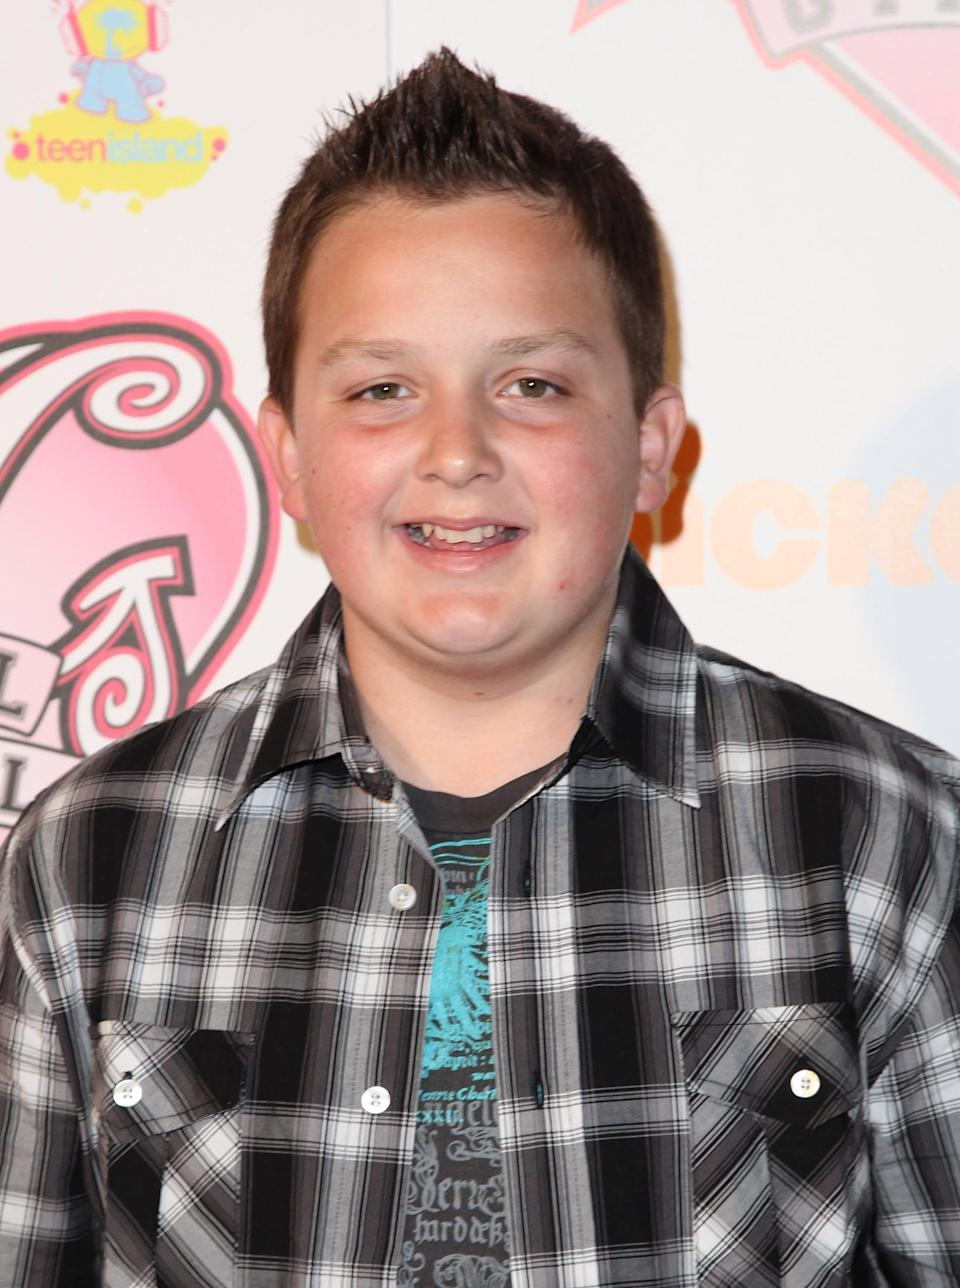 <p>The youngest of the bunch, Noah Munck was 11 years old when he joined the <strong>iCarly</strong> cast as the hilarious Gibby Gibson. <strong>iCarly</strong> was his first big TV credit. While Gibby started off as a recurring character, he eventually became a series regular after the show entered its fourth season.</p>